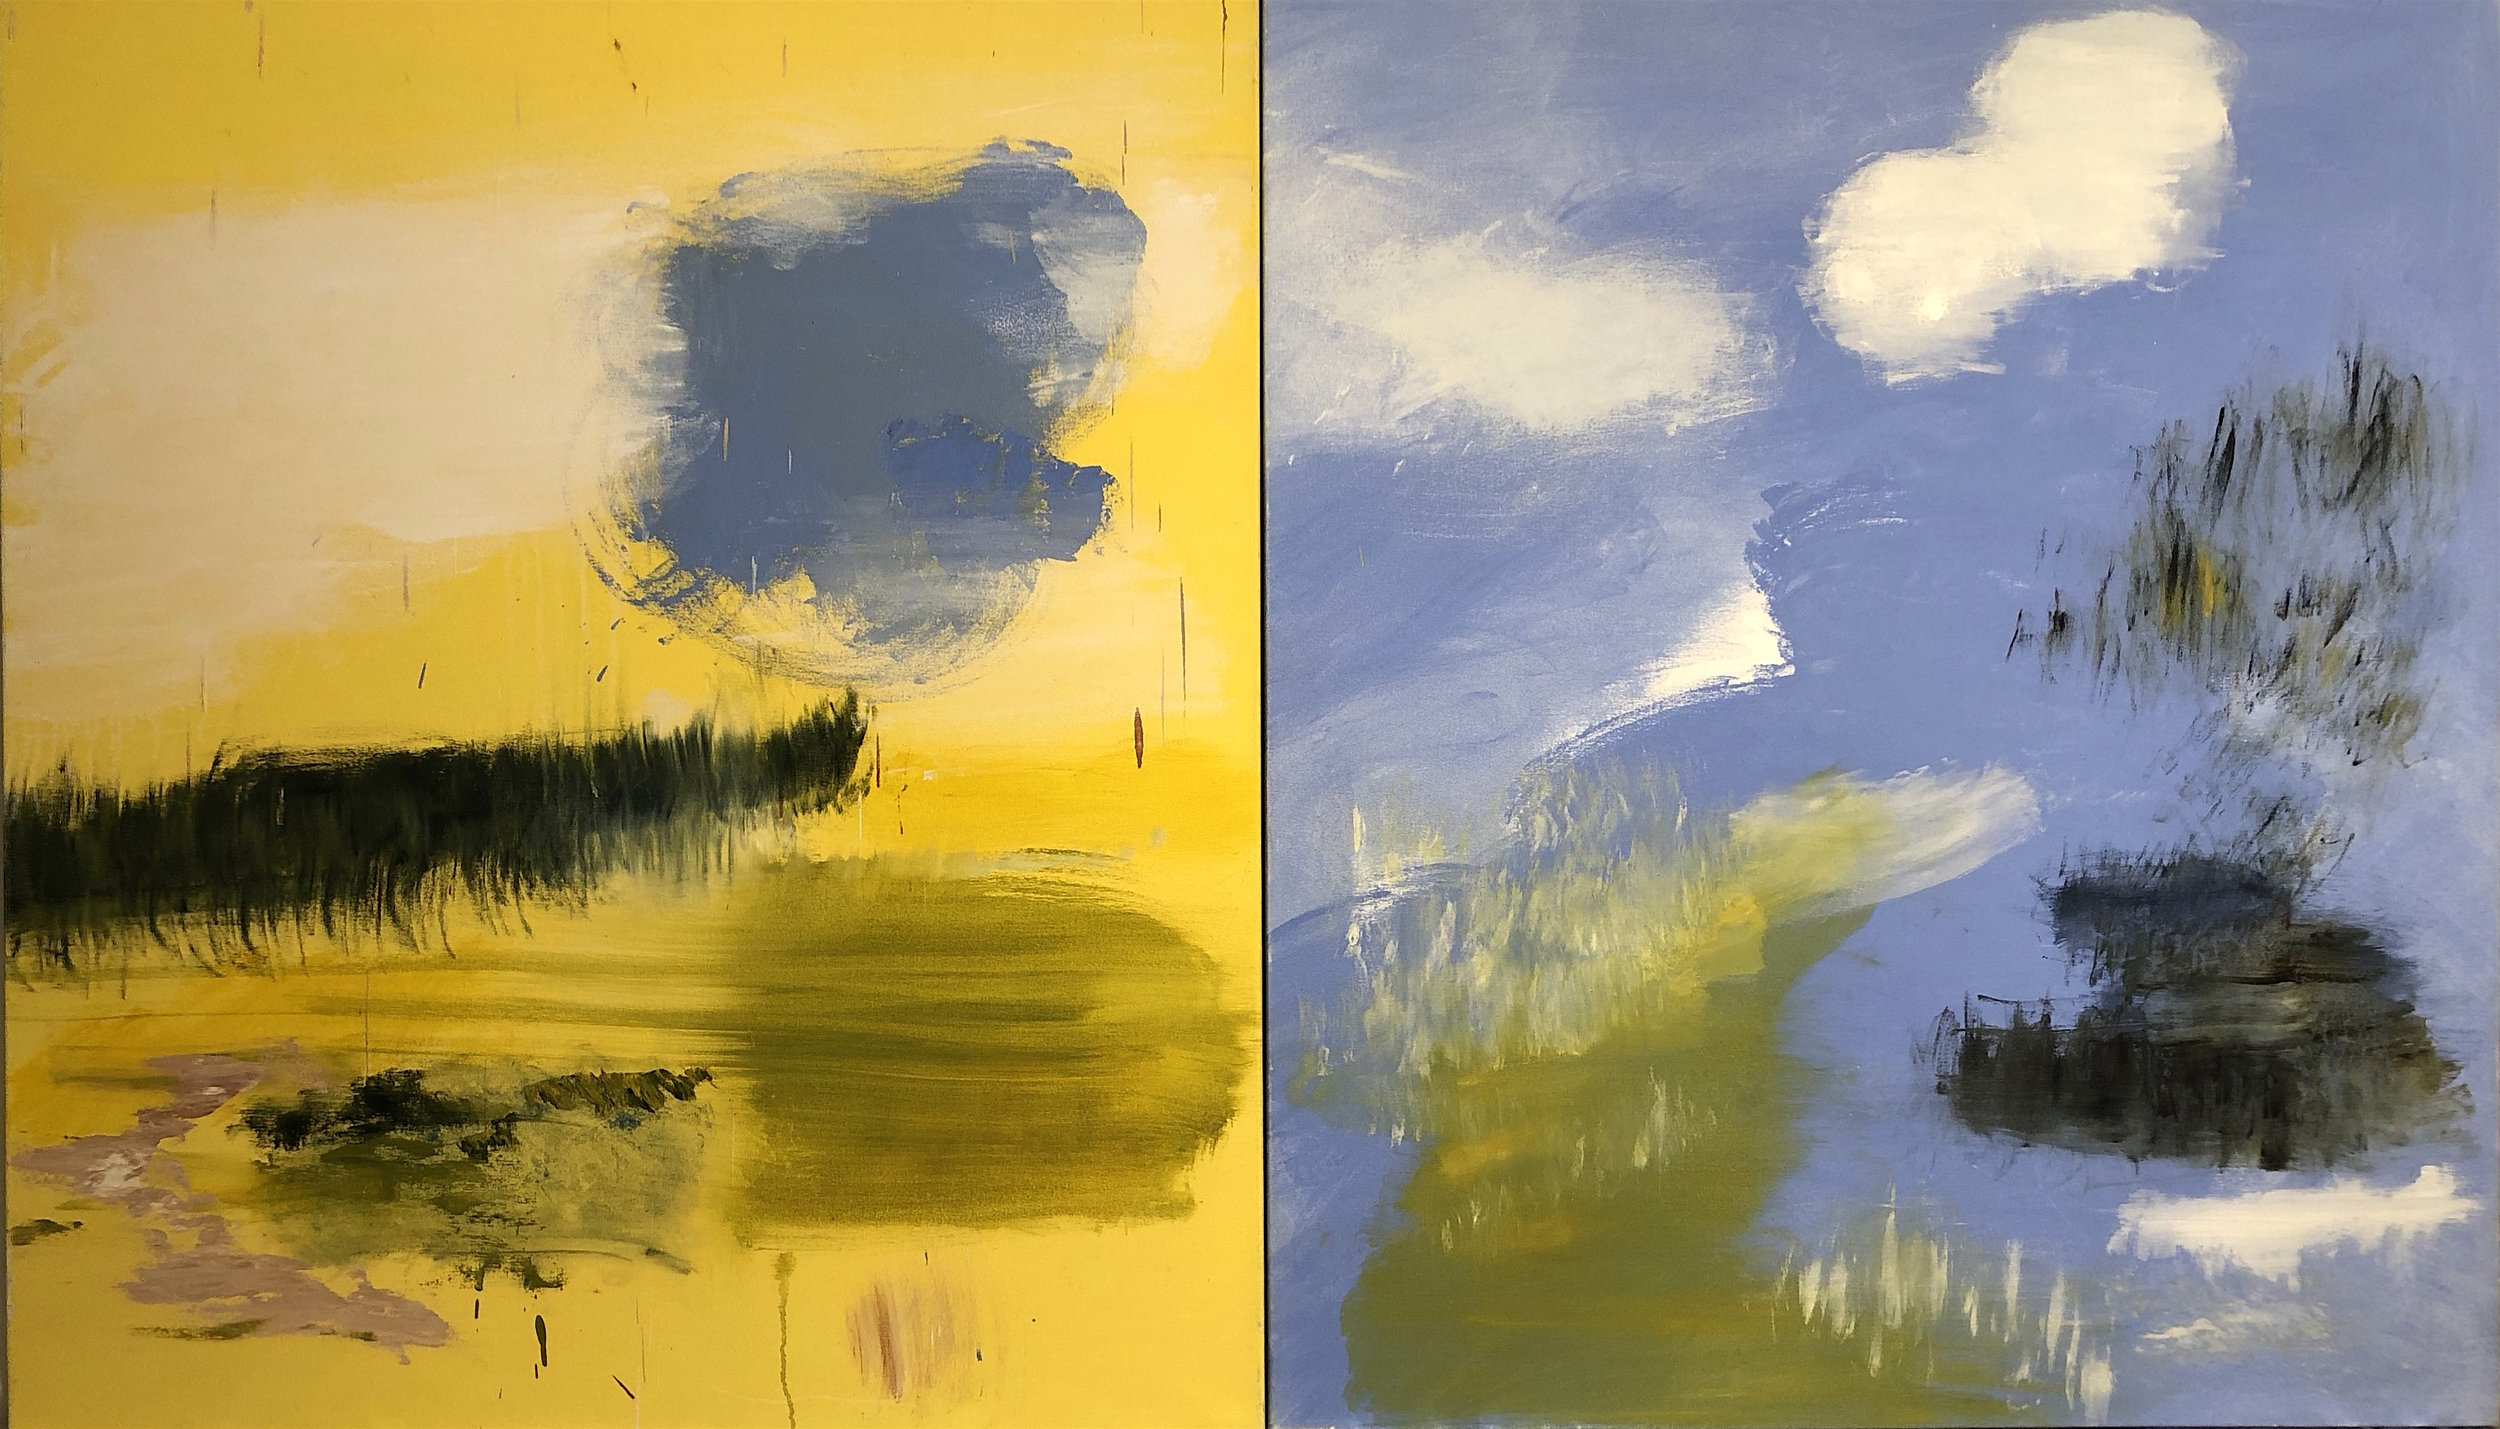 Dyptich, Yellow, Blue, 2012